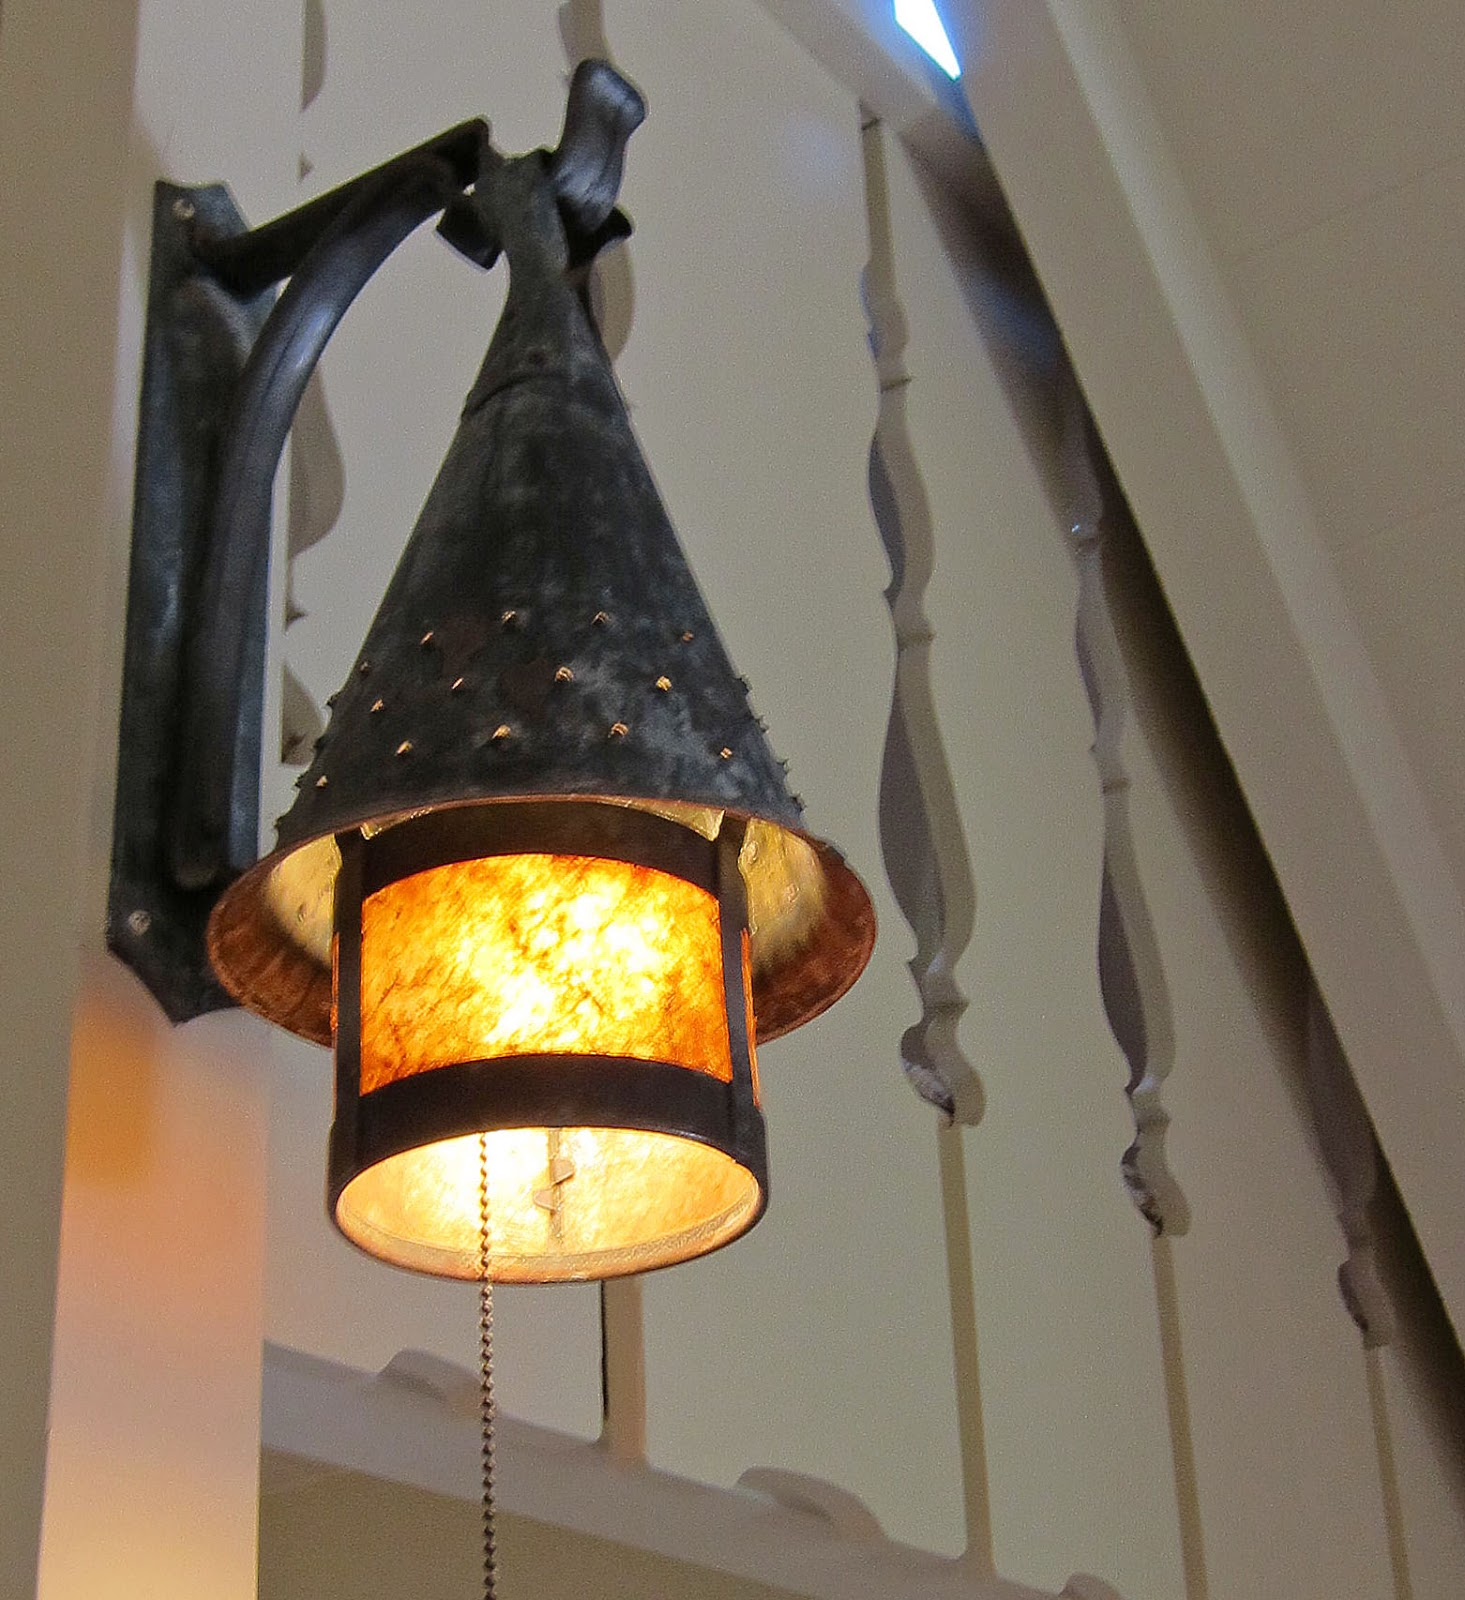 Home Theater Lighting Fixtures: 1000+ Images About Theatre: Lighting Fixtures On Pinterest